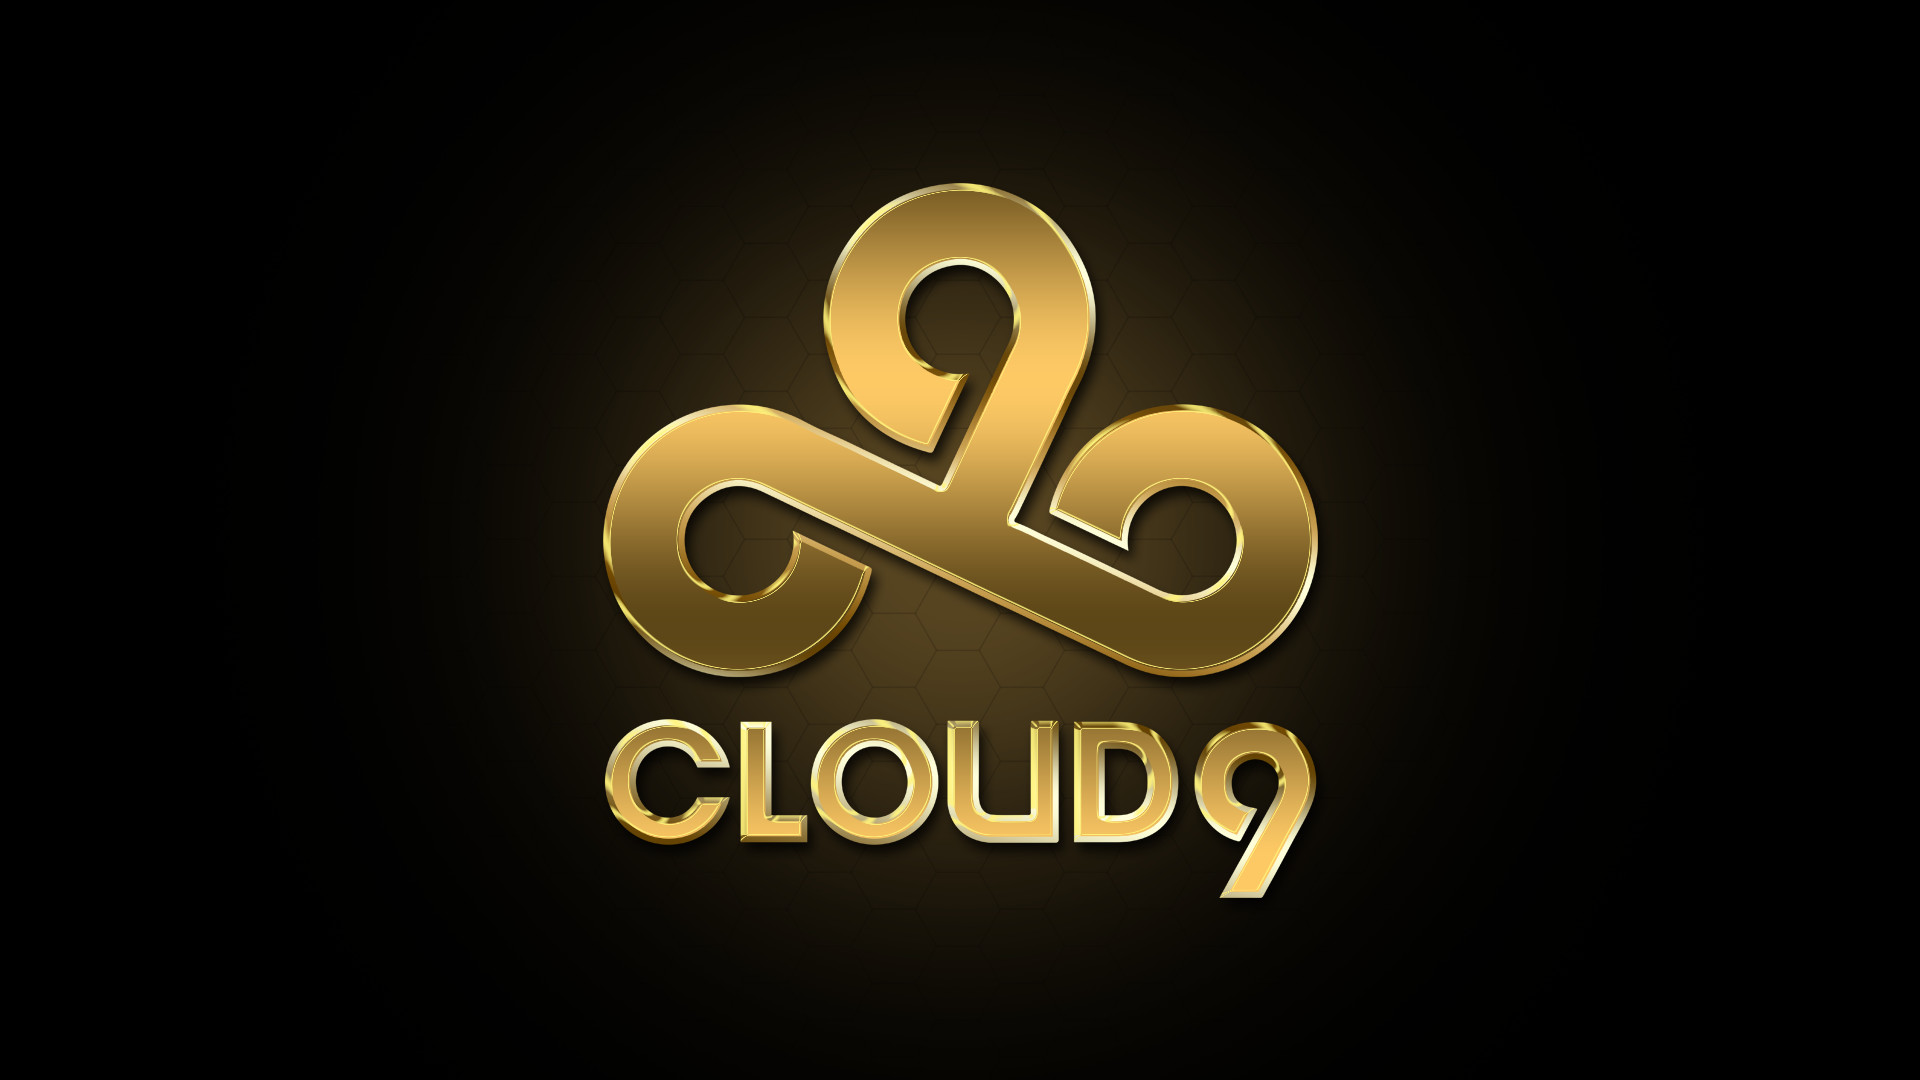 Cloud 9 Csgo HD Wallpapers (94+ images)